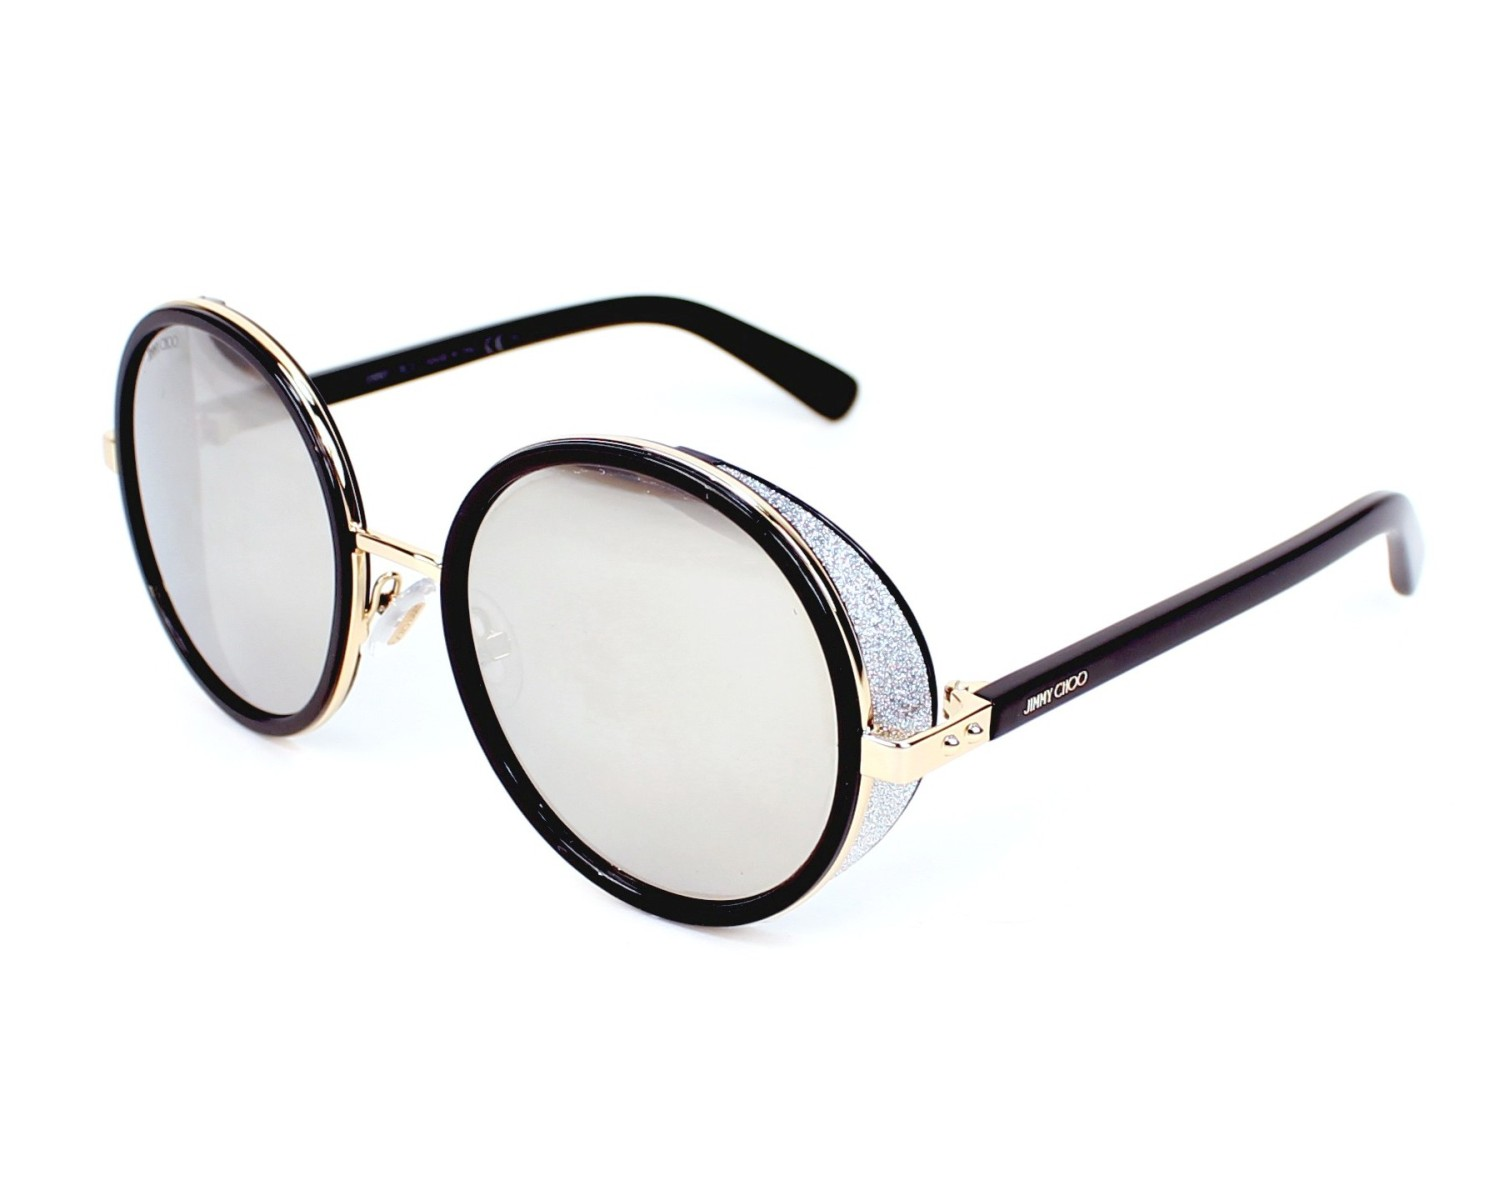 0083d09402 Sunglasses Jimmy Choo ANDIE-S J7Q M3 54-21 Black Gold profile view